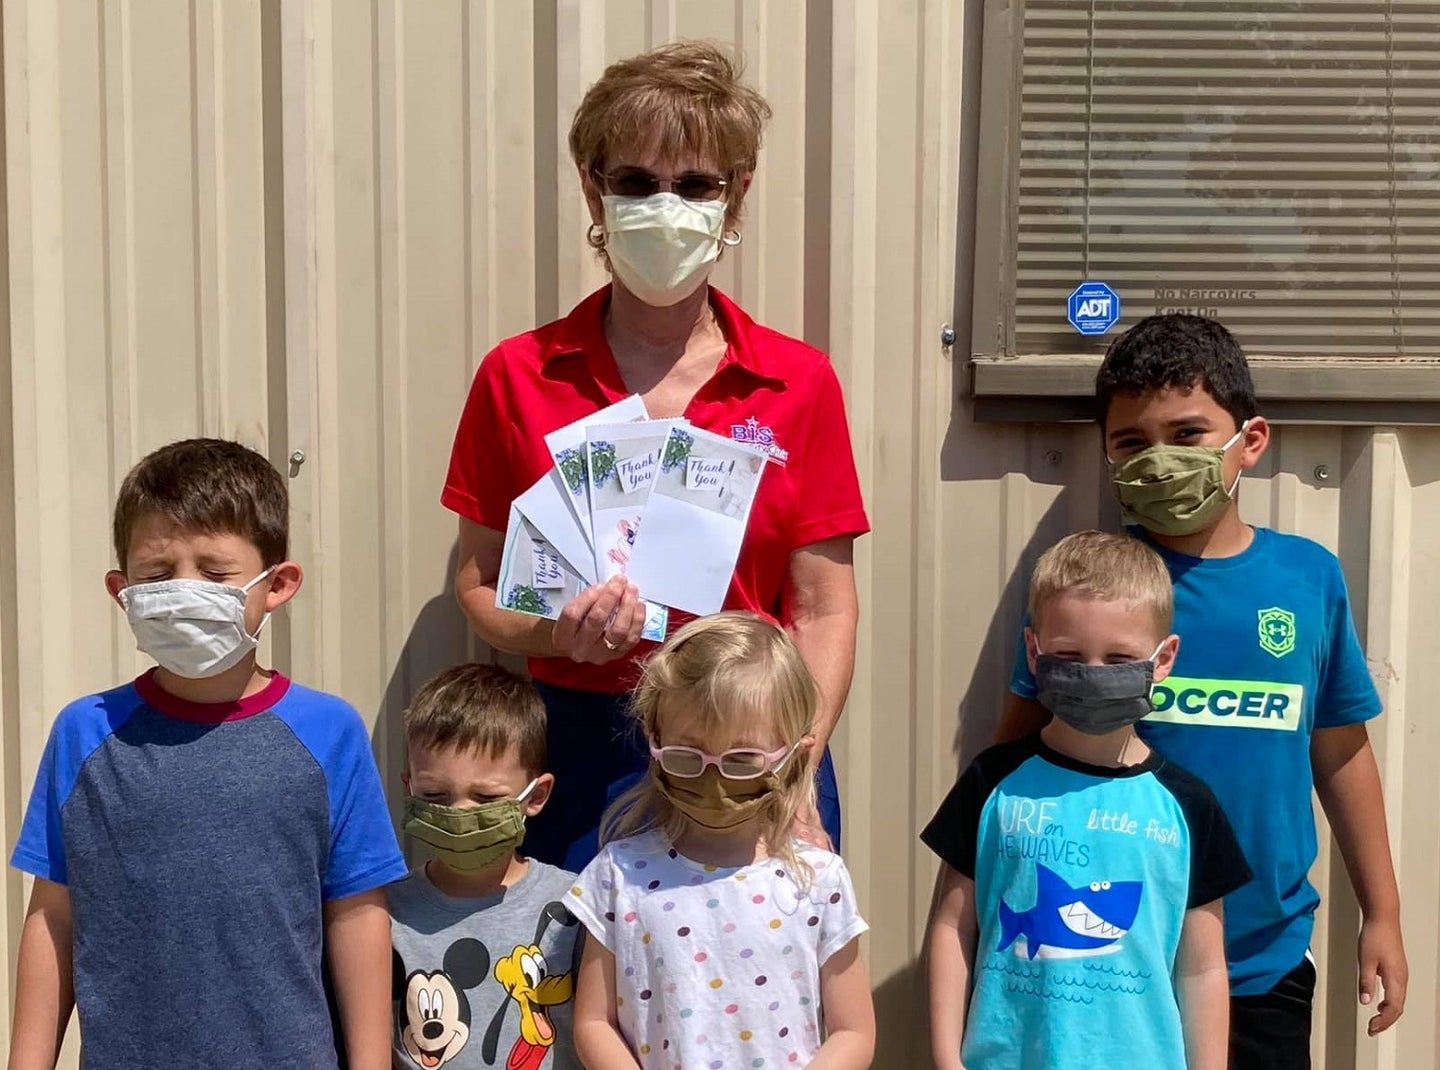 A nurse practitioner and kids wearing masks in front of a rural Texas COVID-19 clinic